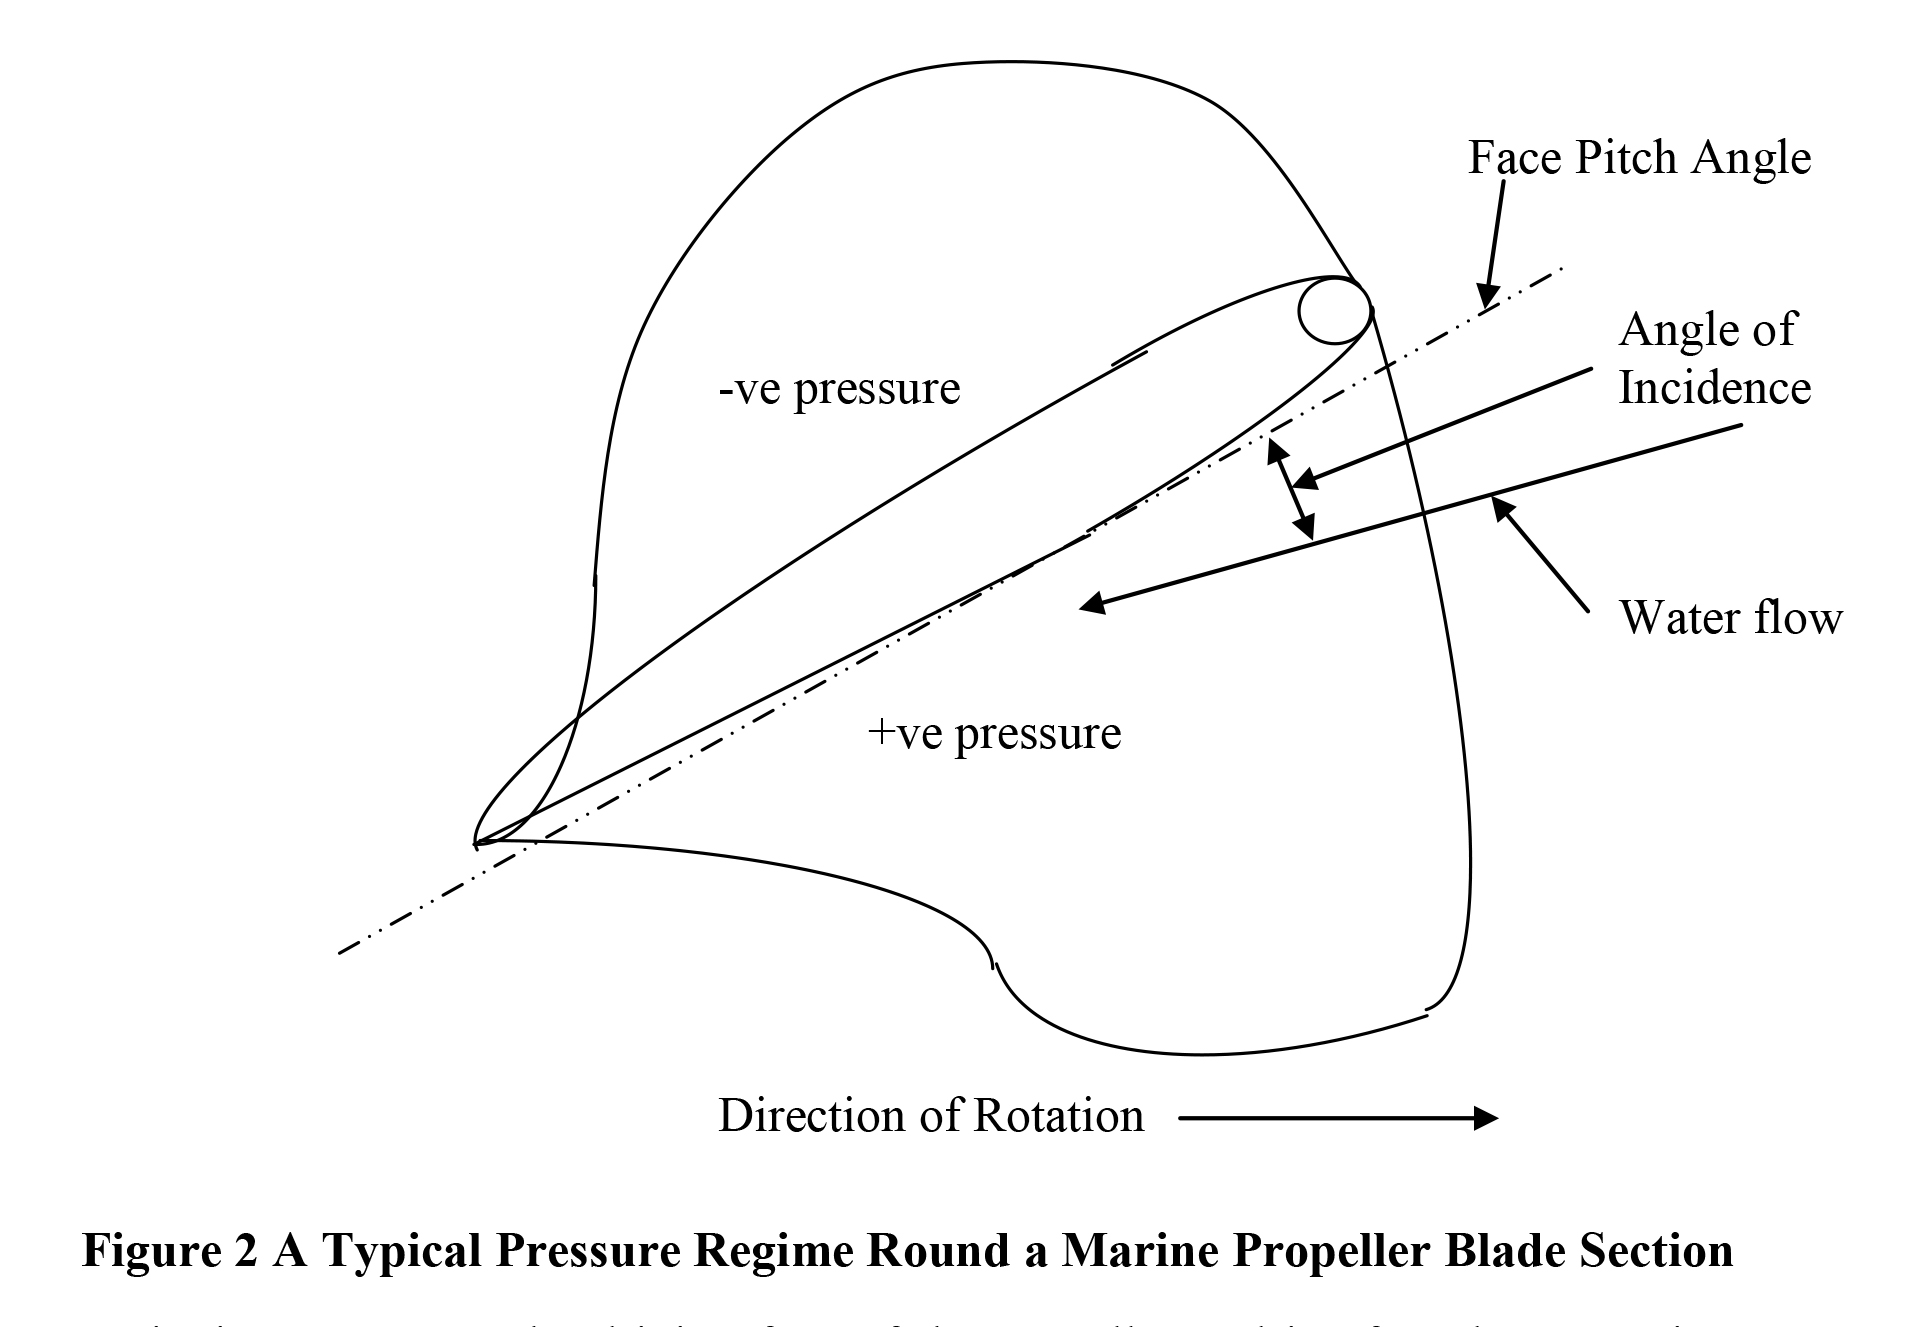 An introduction to propeller cavitation